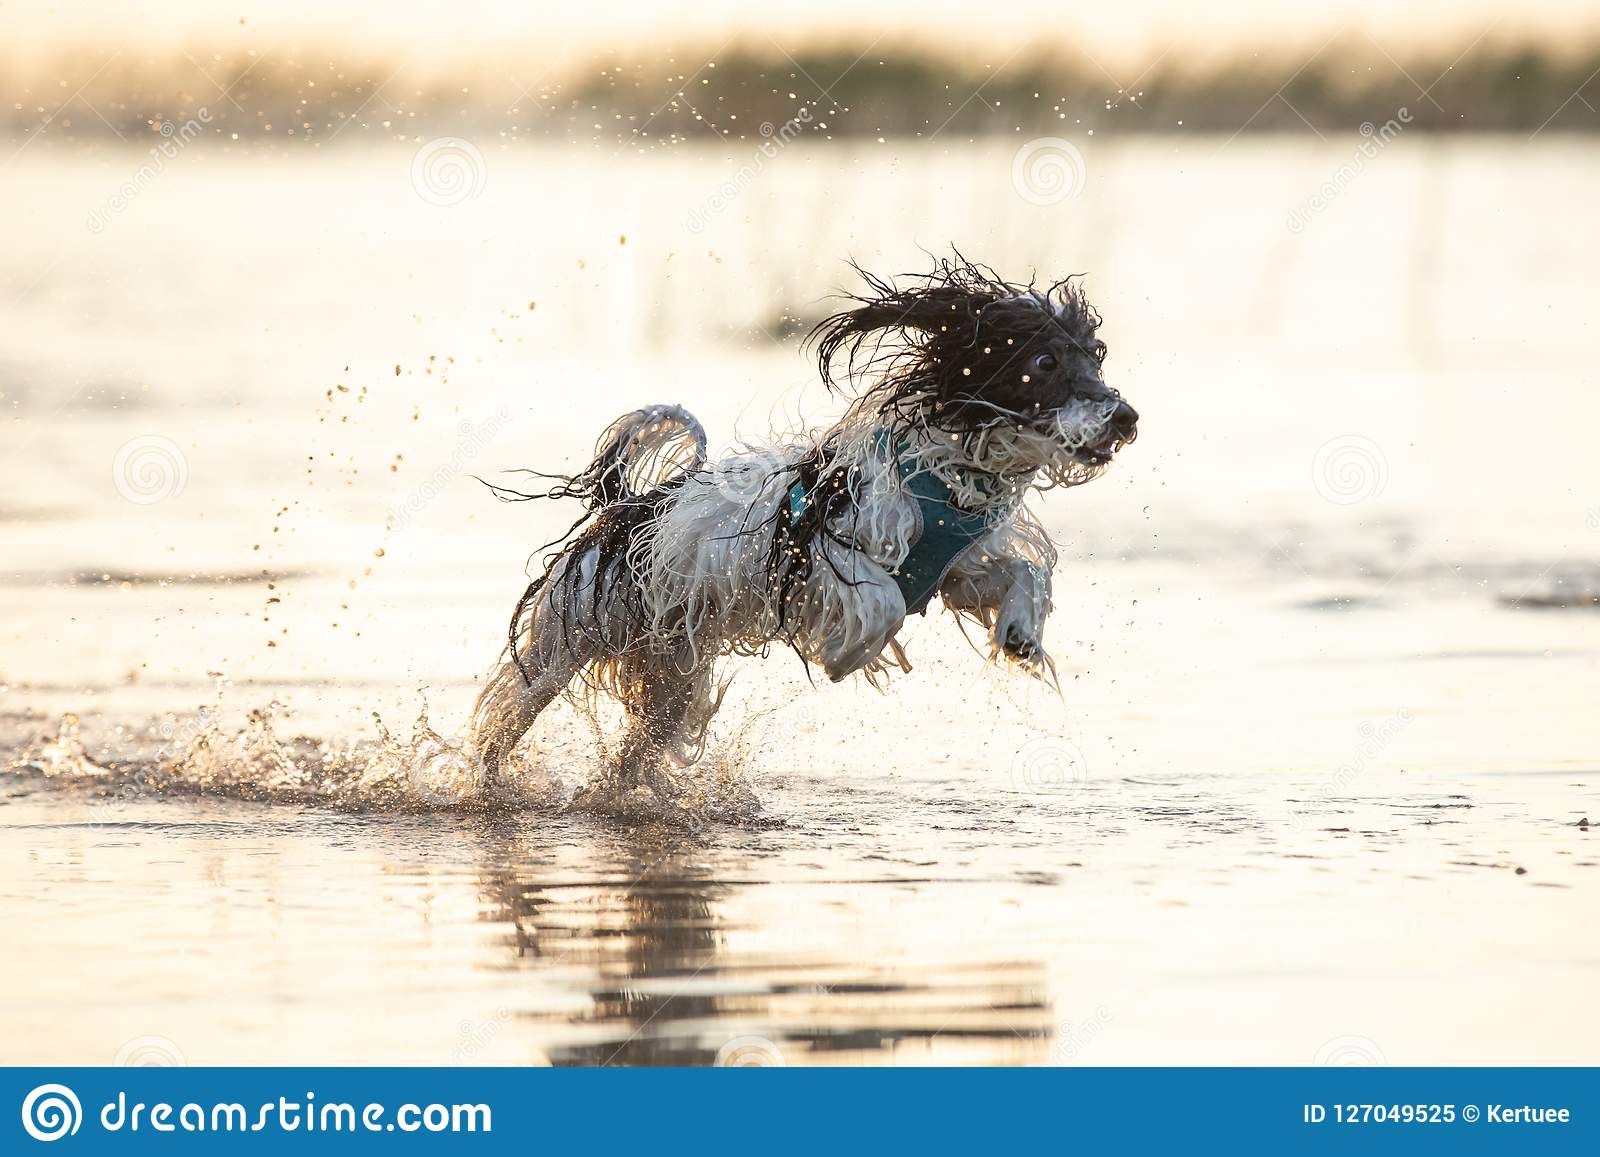 Little black and white dog running around in shallow waters.